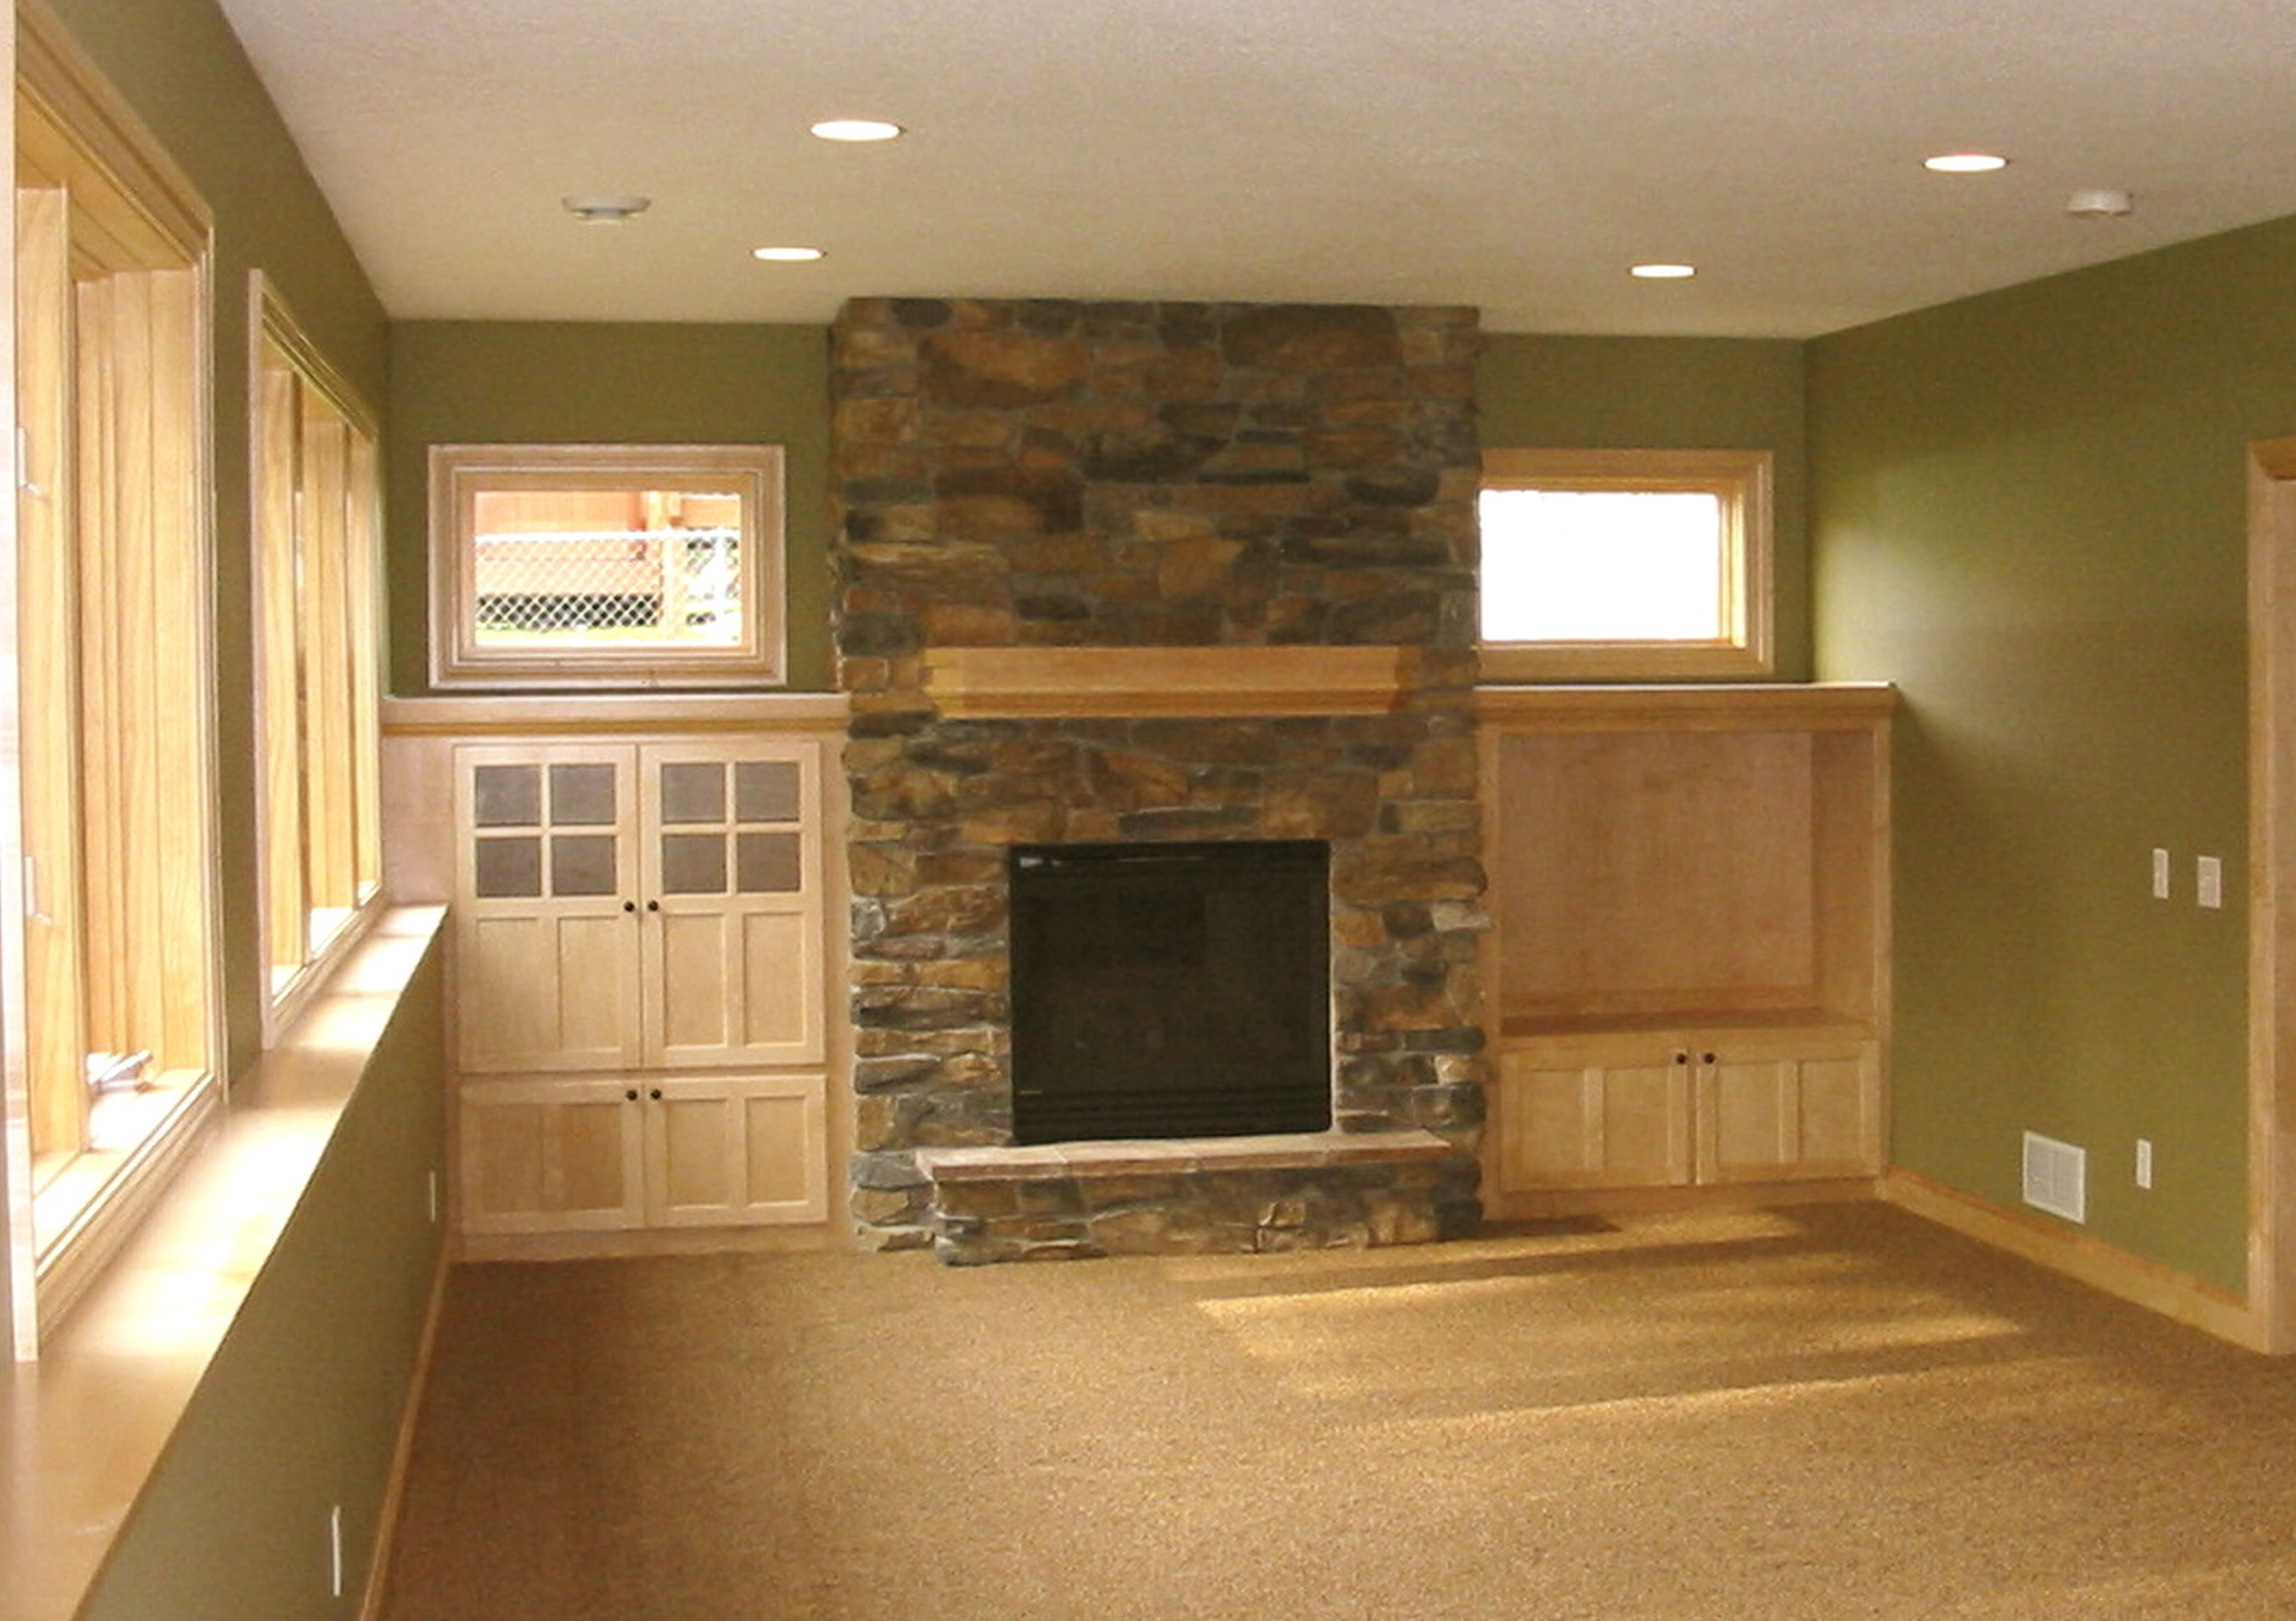 Marietta Landscaping - F&M Home Services on Remodeling Ideas  id=97104